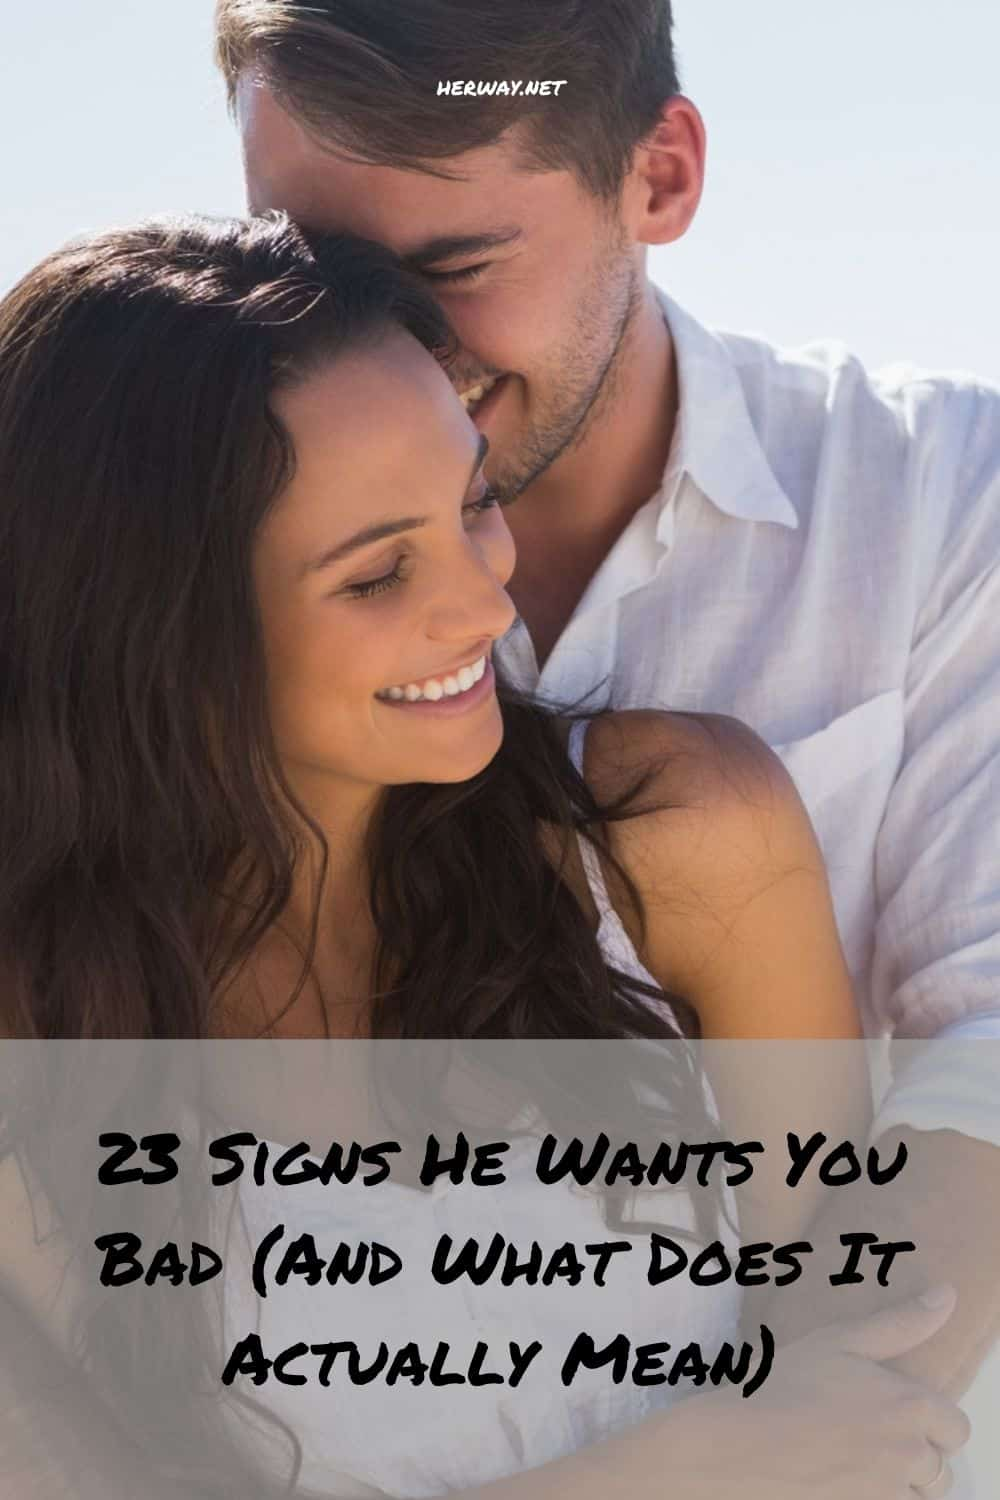 23 Signs He Wants You Bad (And What Does It Actually Mean)